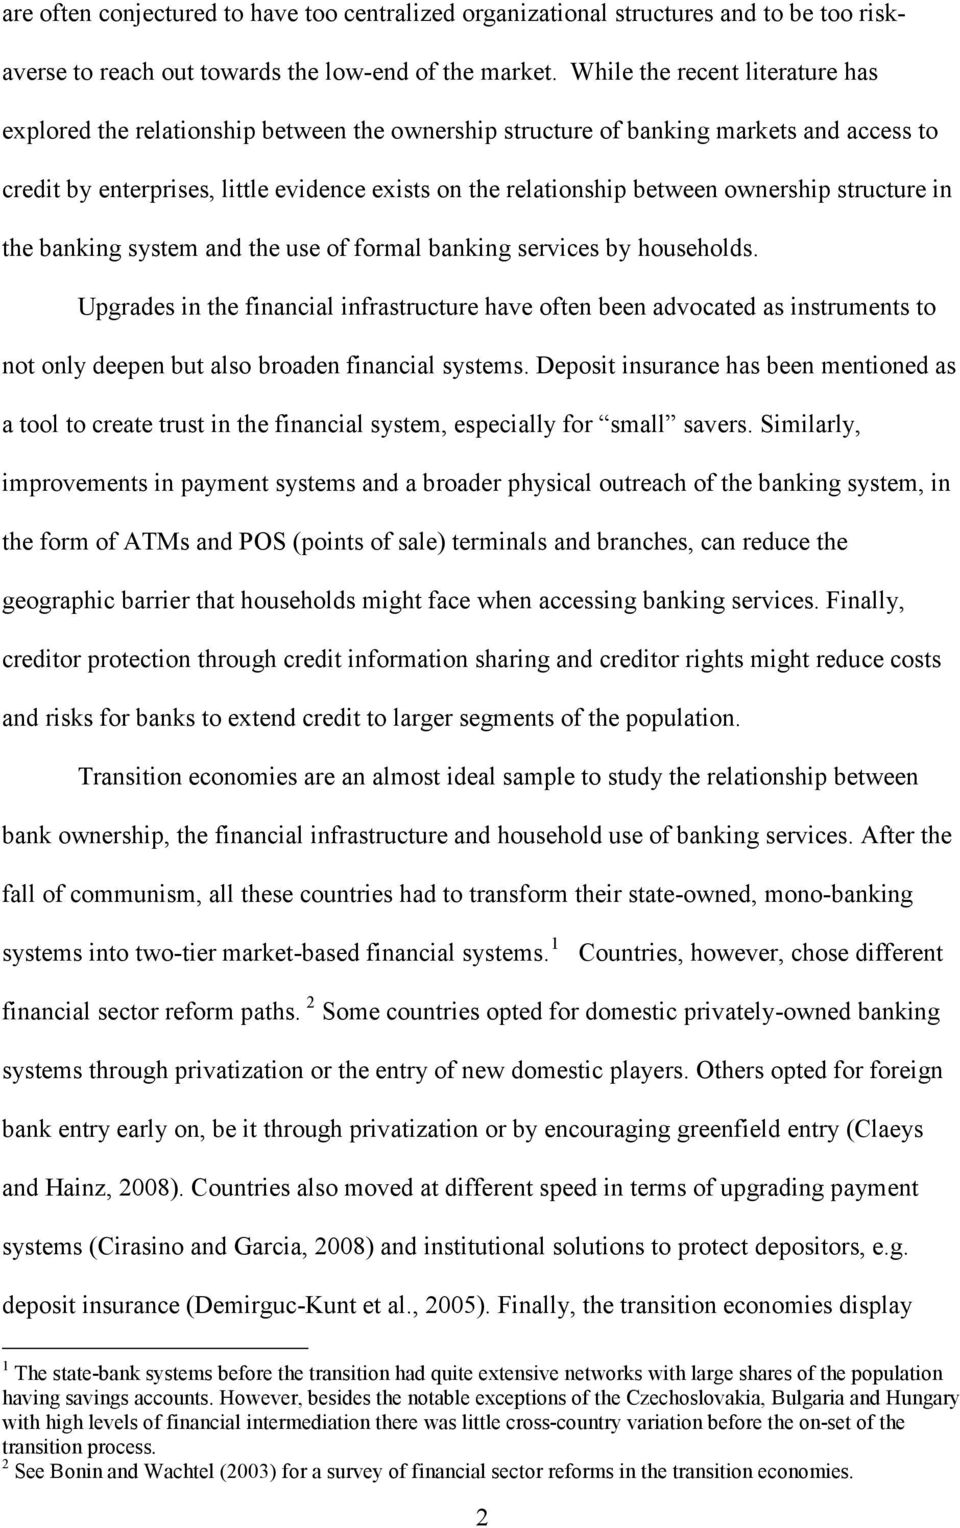 ownership structure in the banking system and the use of formal banking services by households.